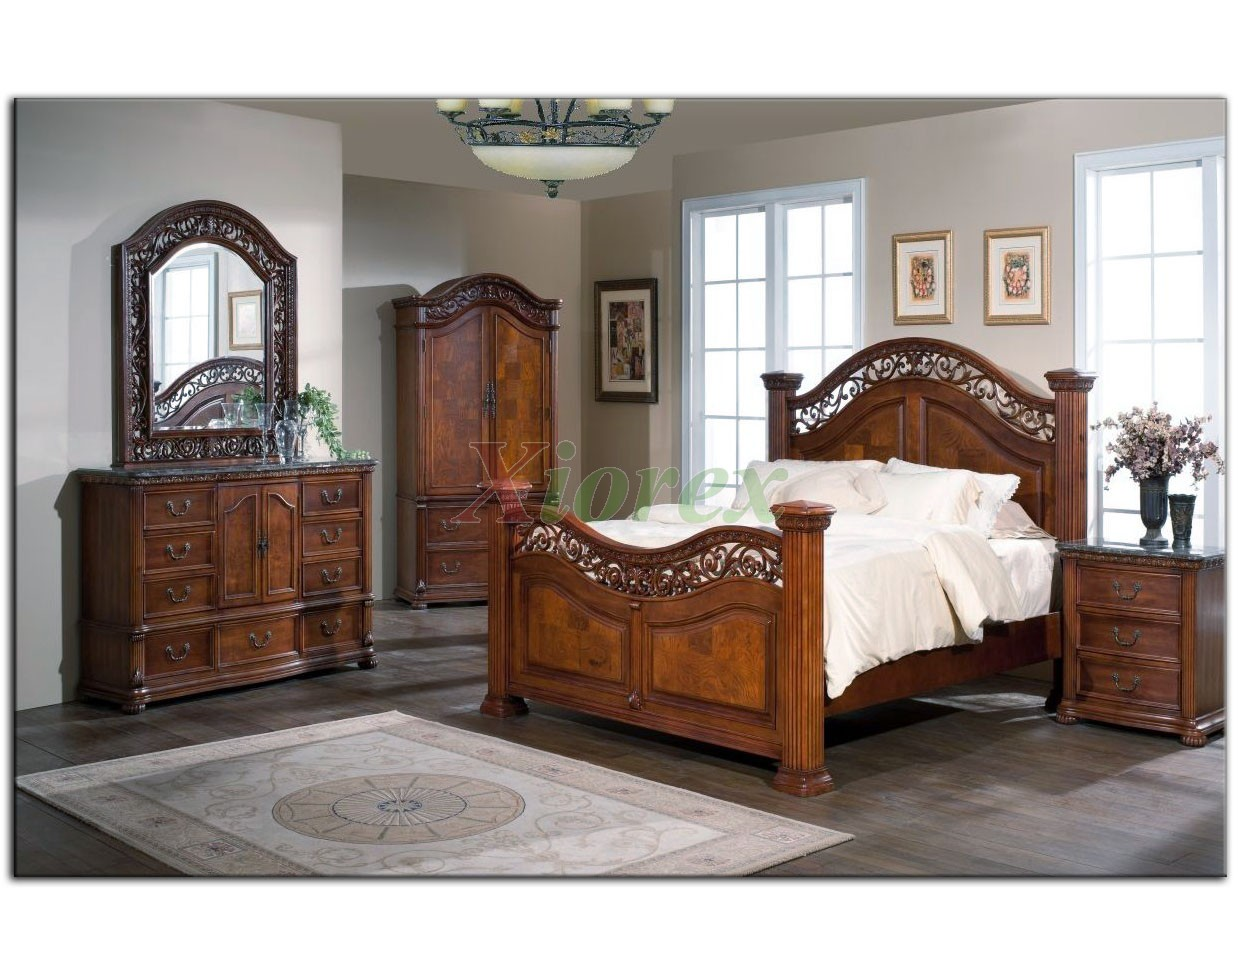 Poster bedroom furniture set 114 xiorex for Furniture bedroom furniture